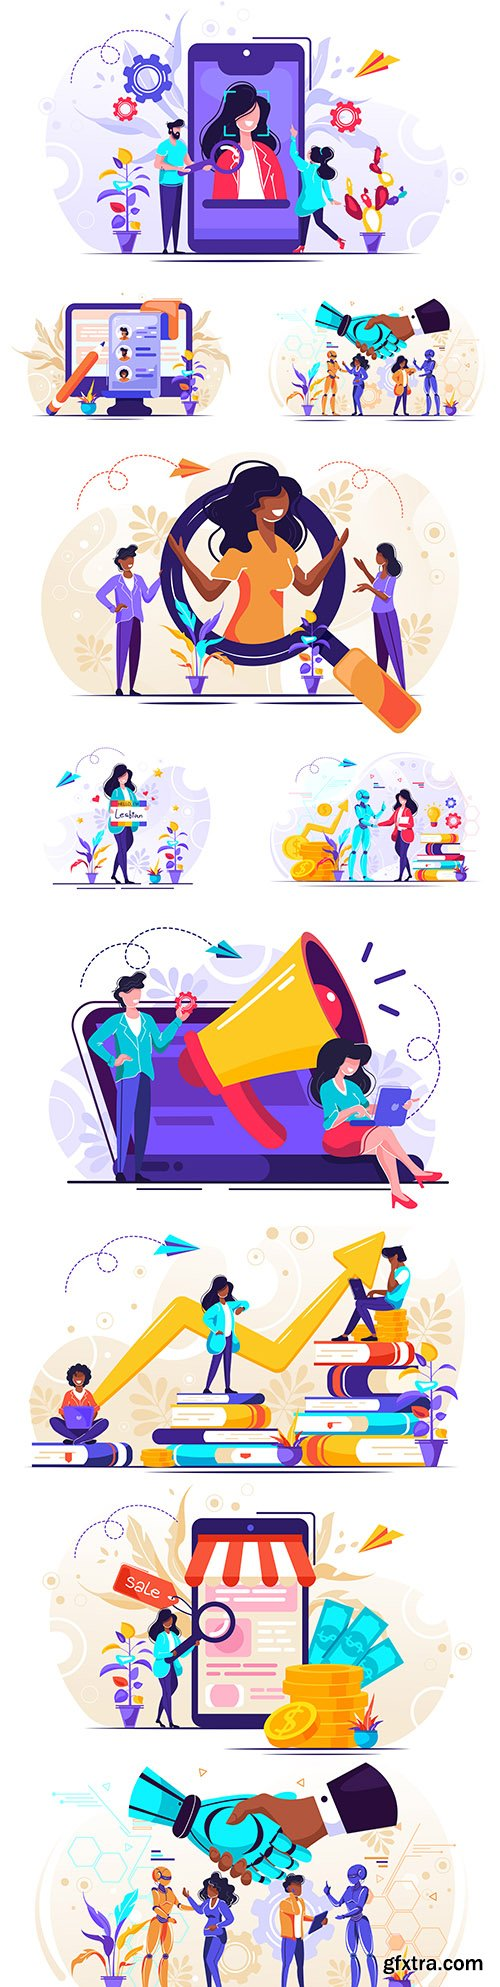 Online store and banking concept illustration